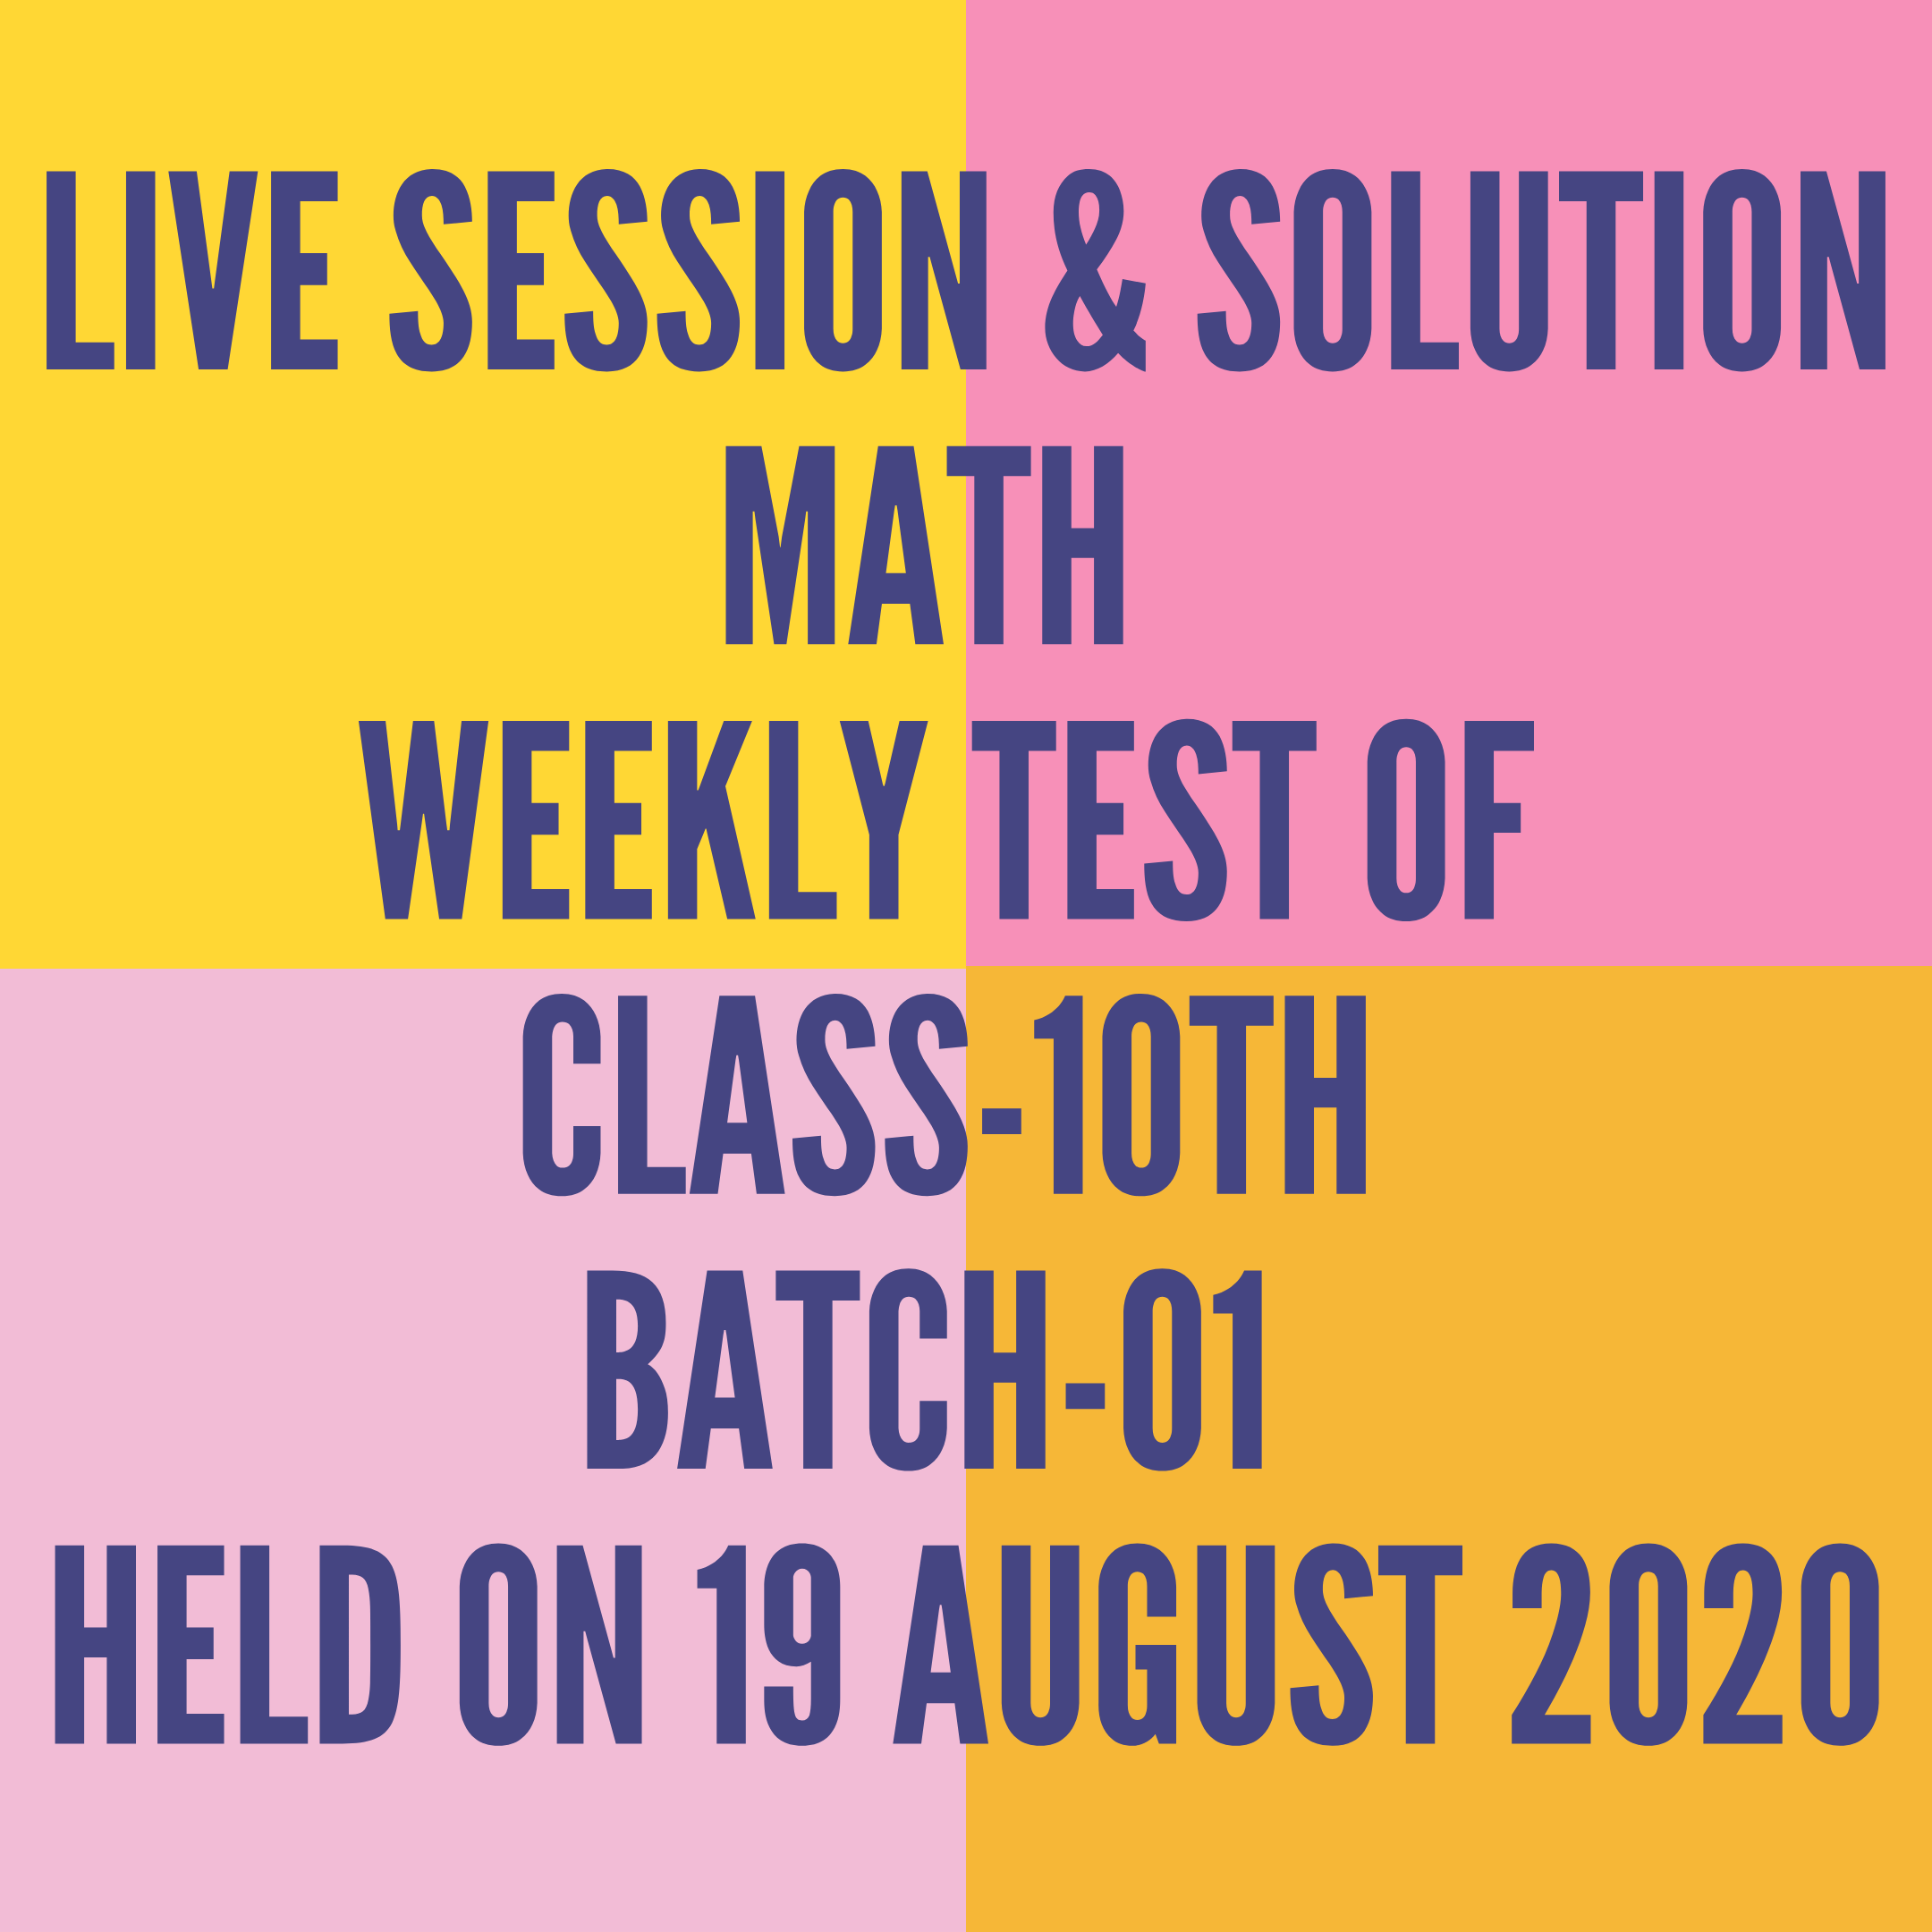 LIVE SESSION & SOLUTION MATH  WEEKLY TEST OF CLASS-10TH BATCH-01  HELD ON 19 AUGUST 2020